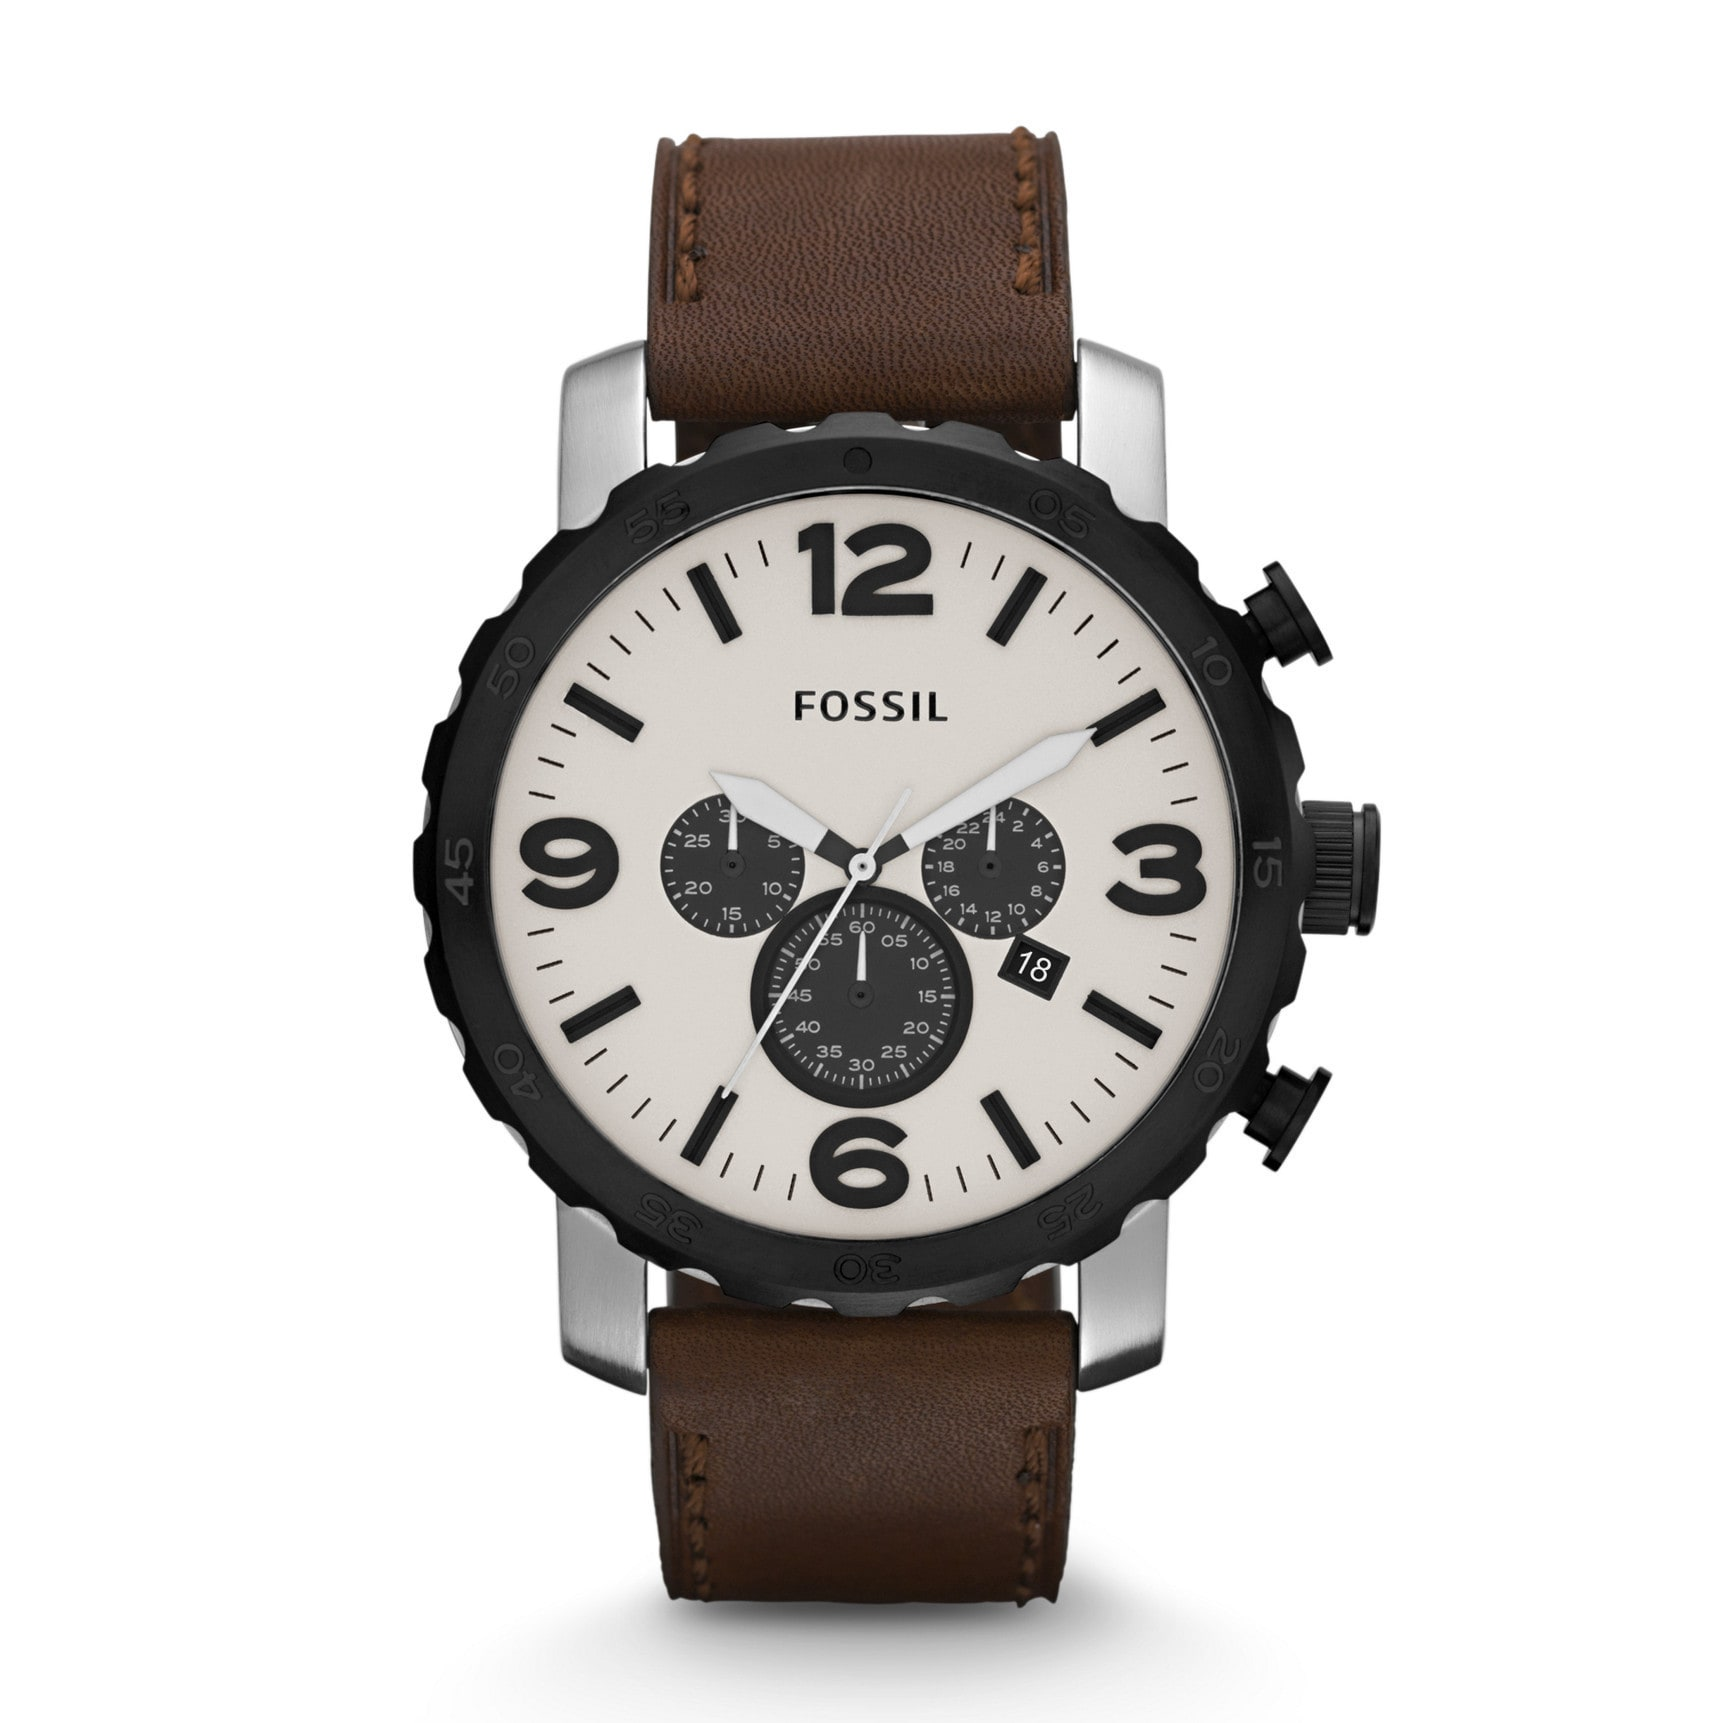 Fossil Men's 'Nate' Brown Leather Strap/ Beige Dial Watch...